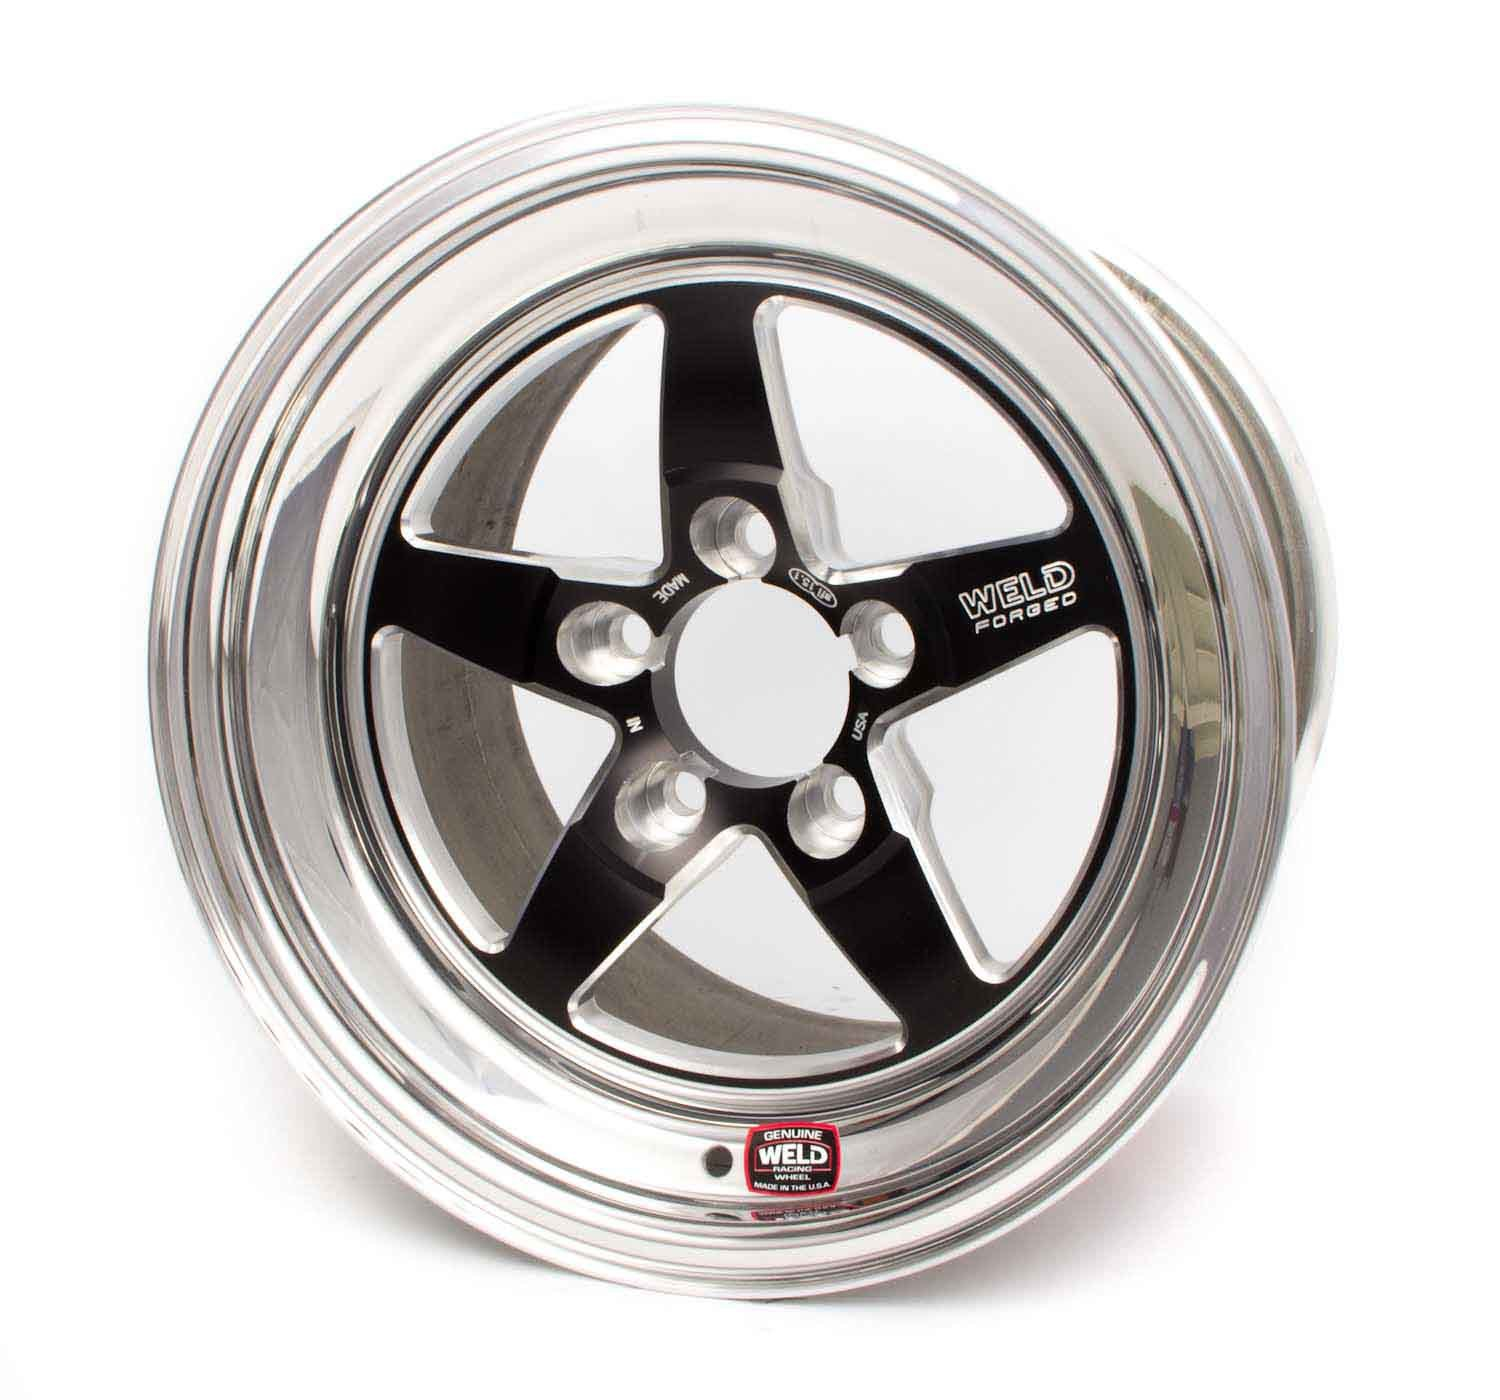 17x10 RT-S Wheel 5x115mm 6.7 BS